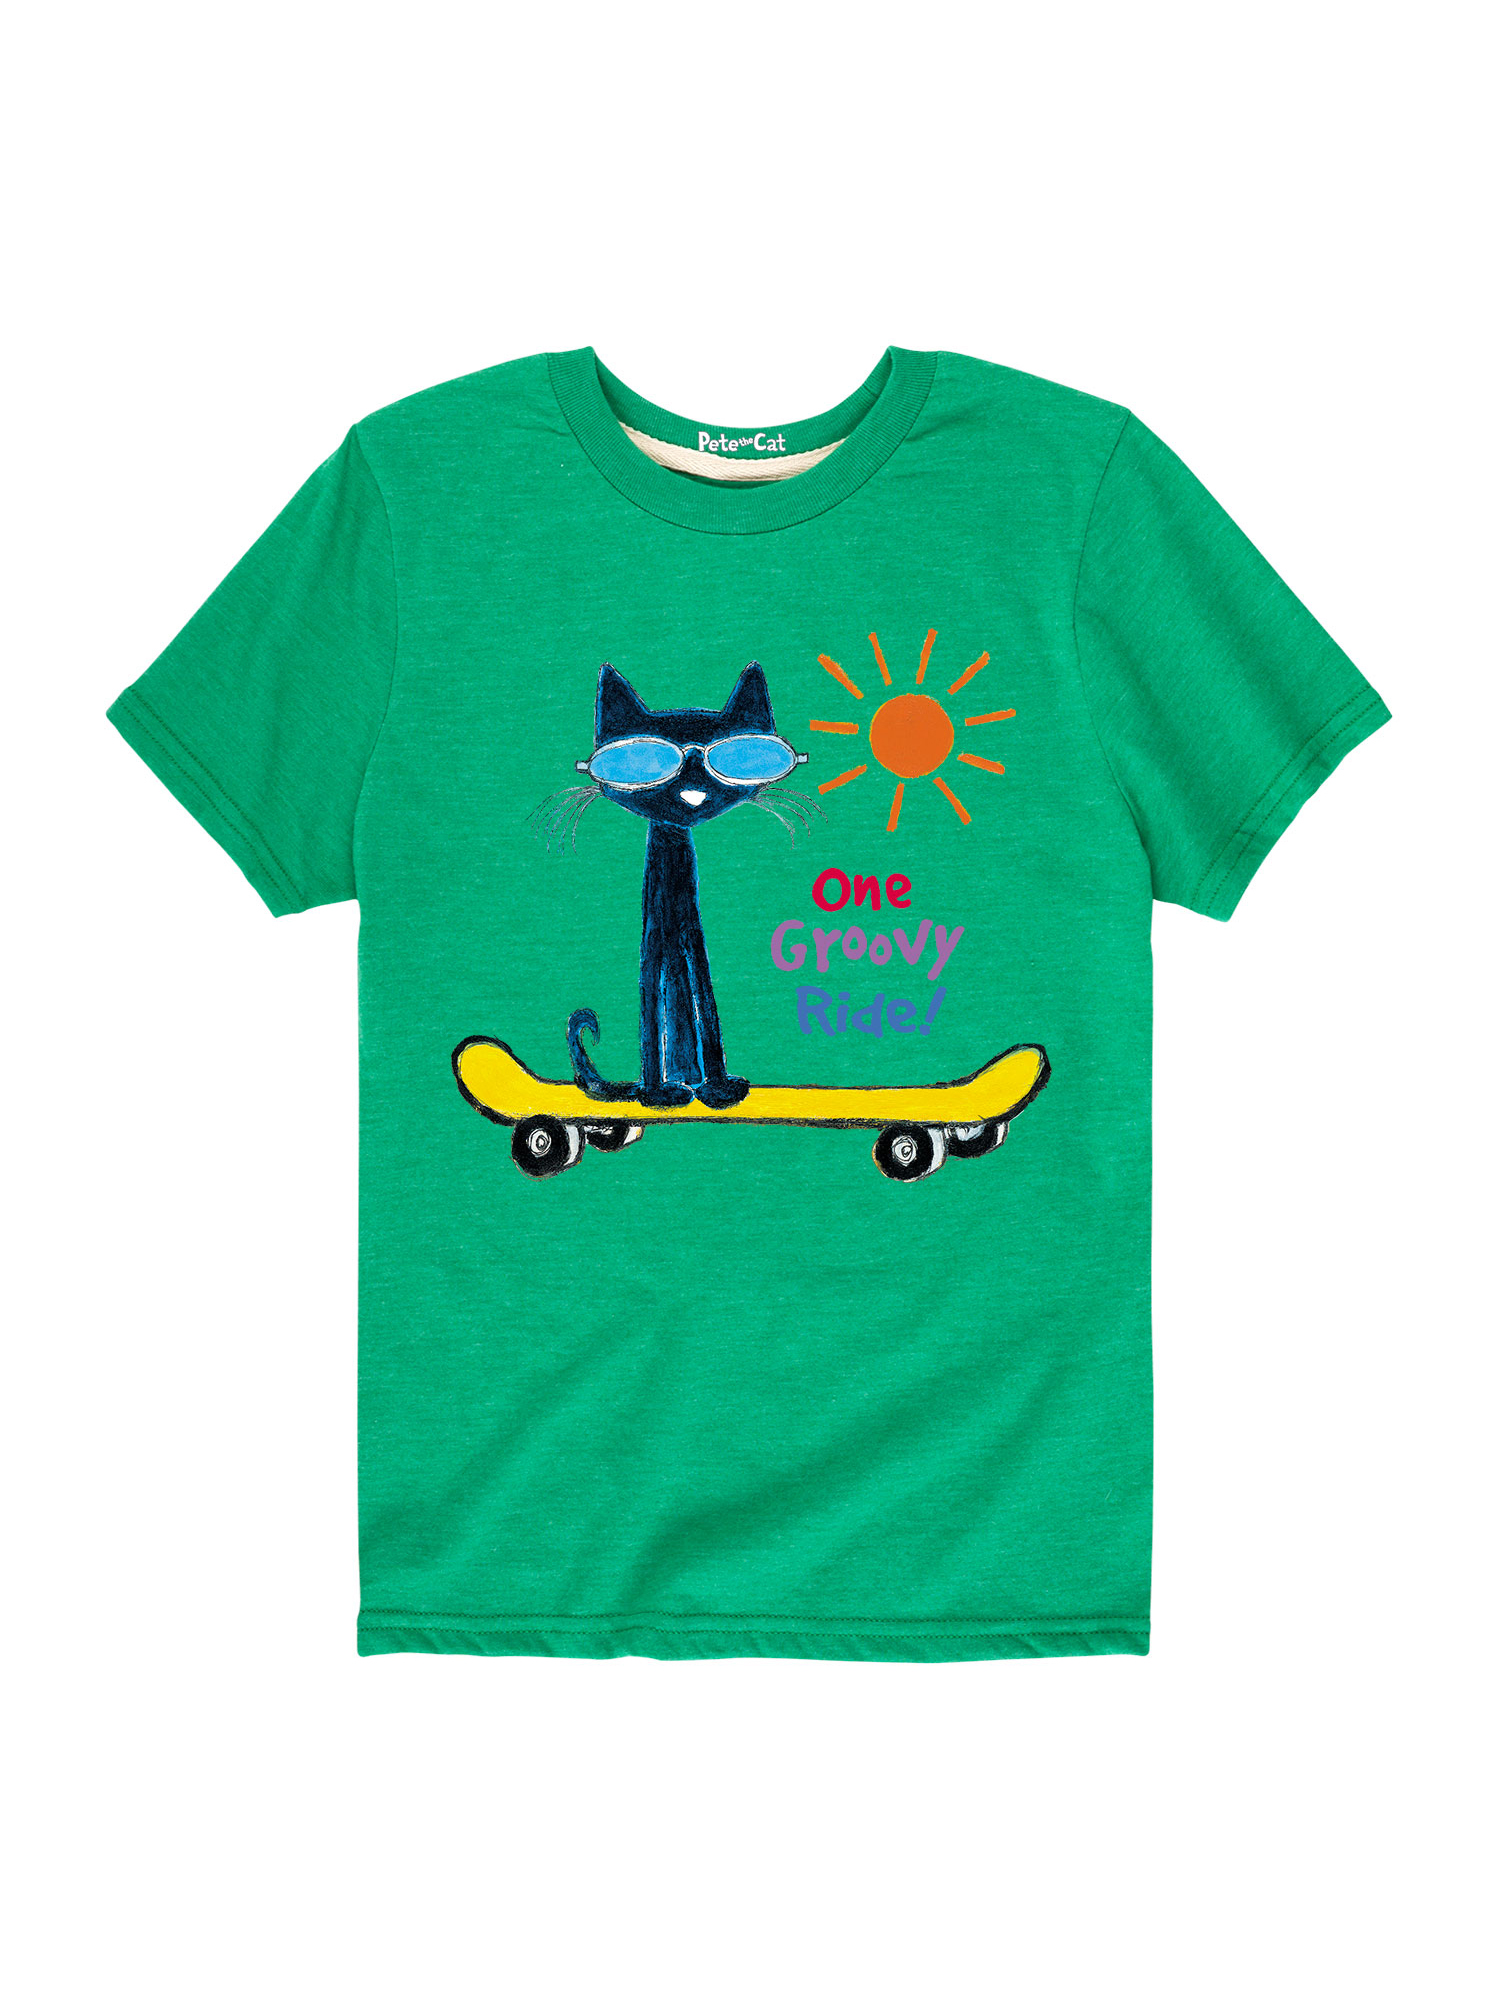 Pete The Cat One Groovey Ride  - Toddler Short Sleeve Tee